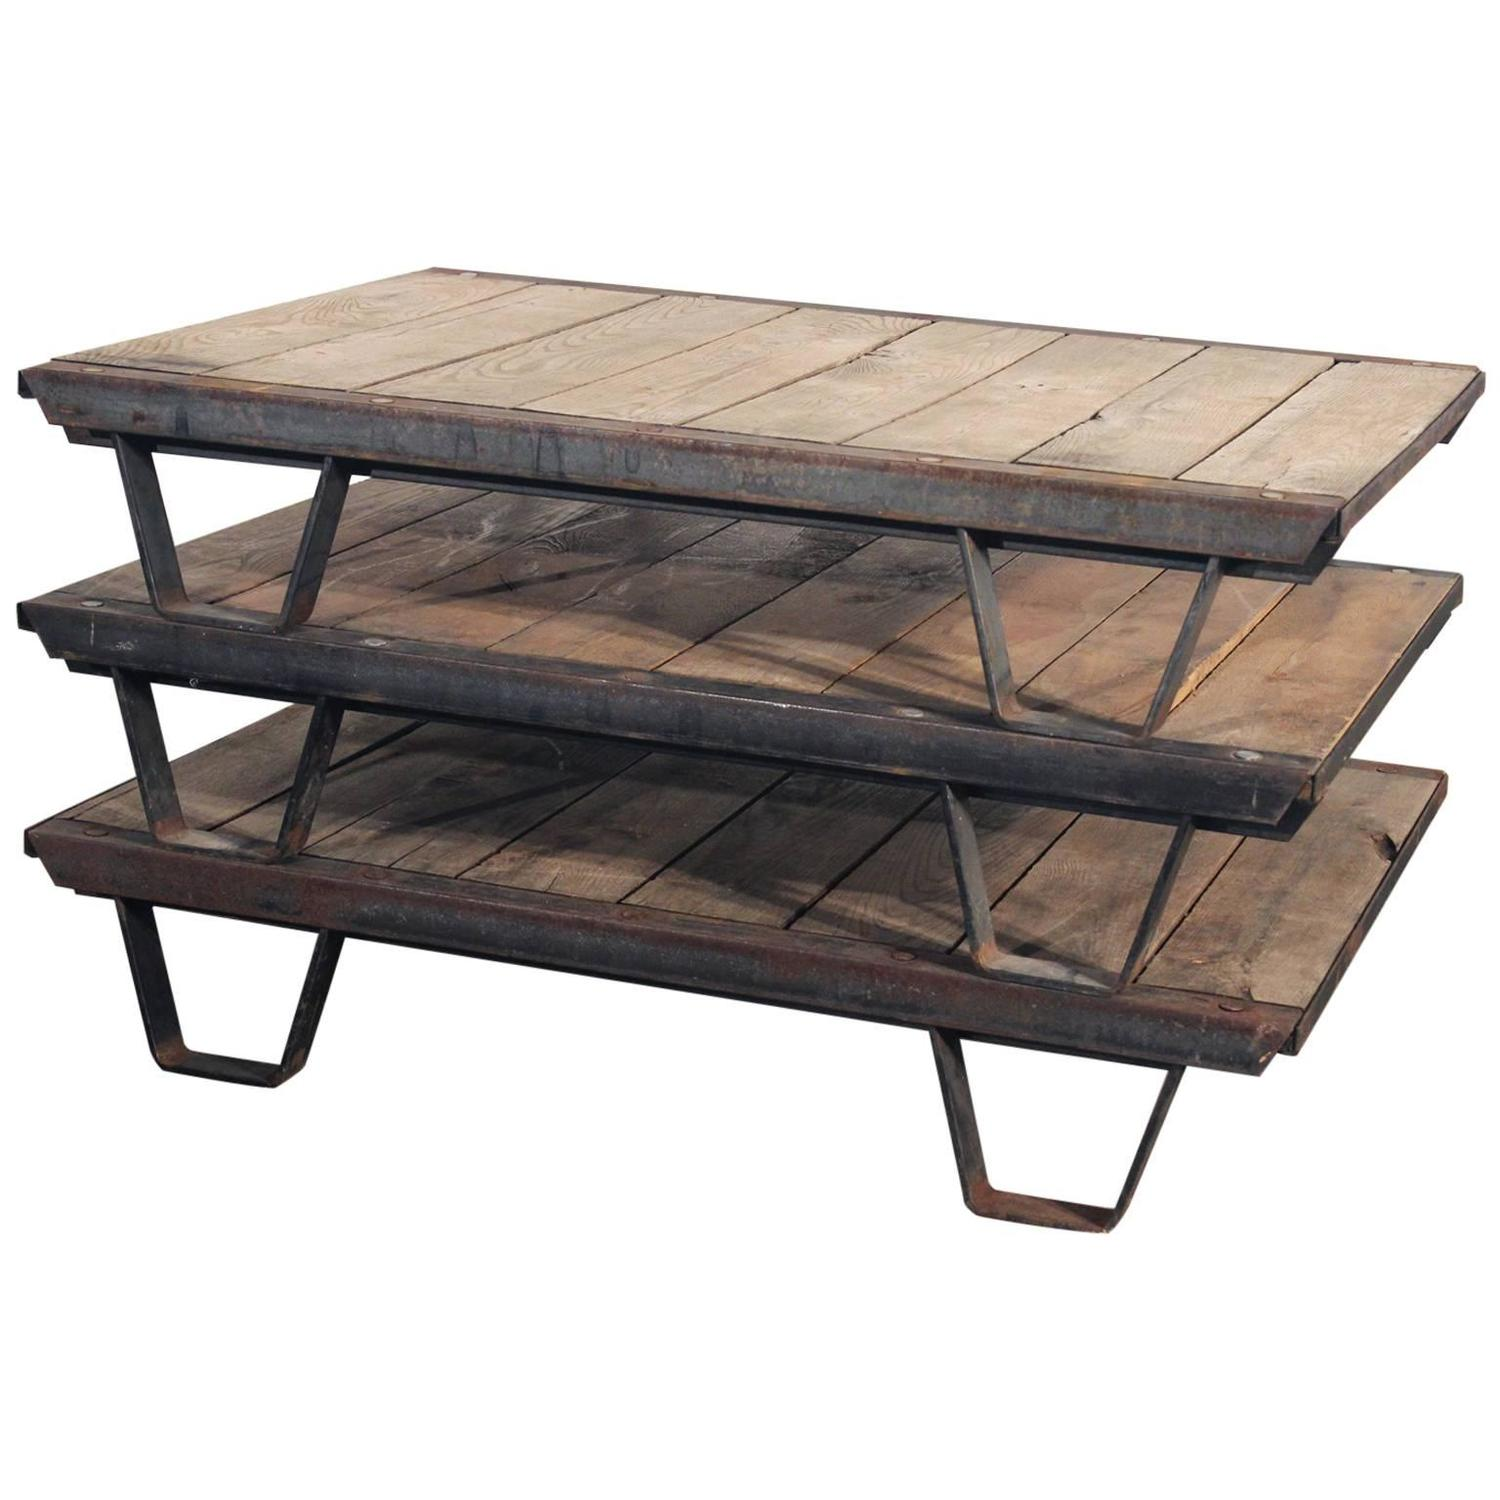 1930s Industrial Wooden Pallets Iron Rustic Frame For Sale at 1stdibs